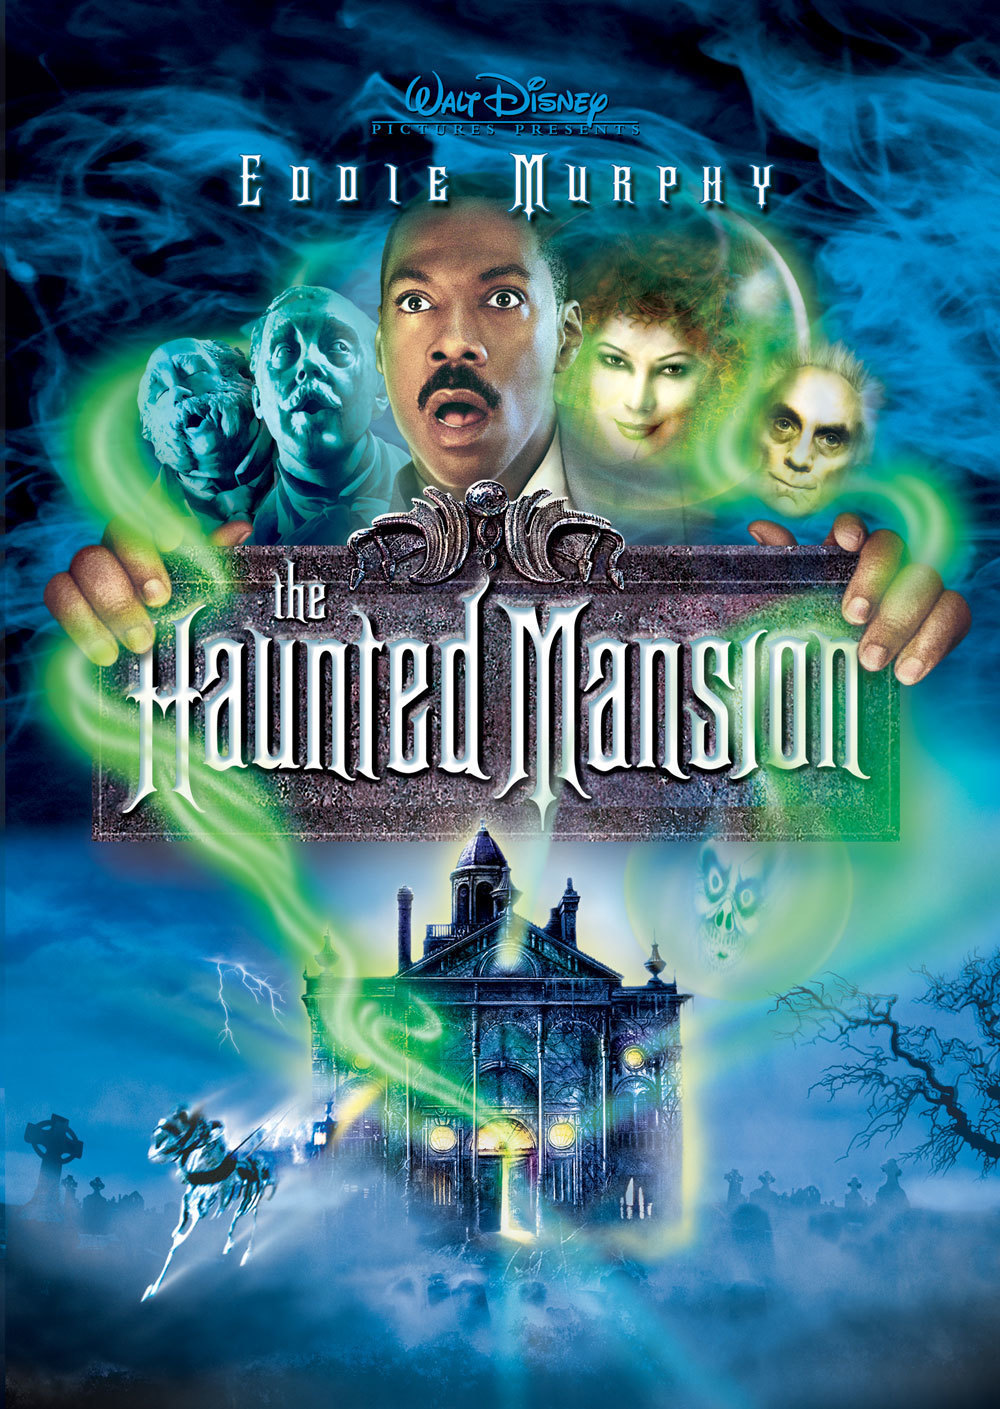 「The Haunted Mansion movie」の画像検索結果